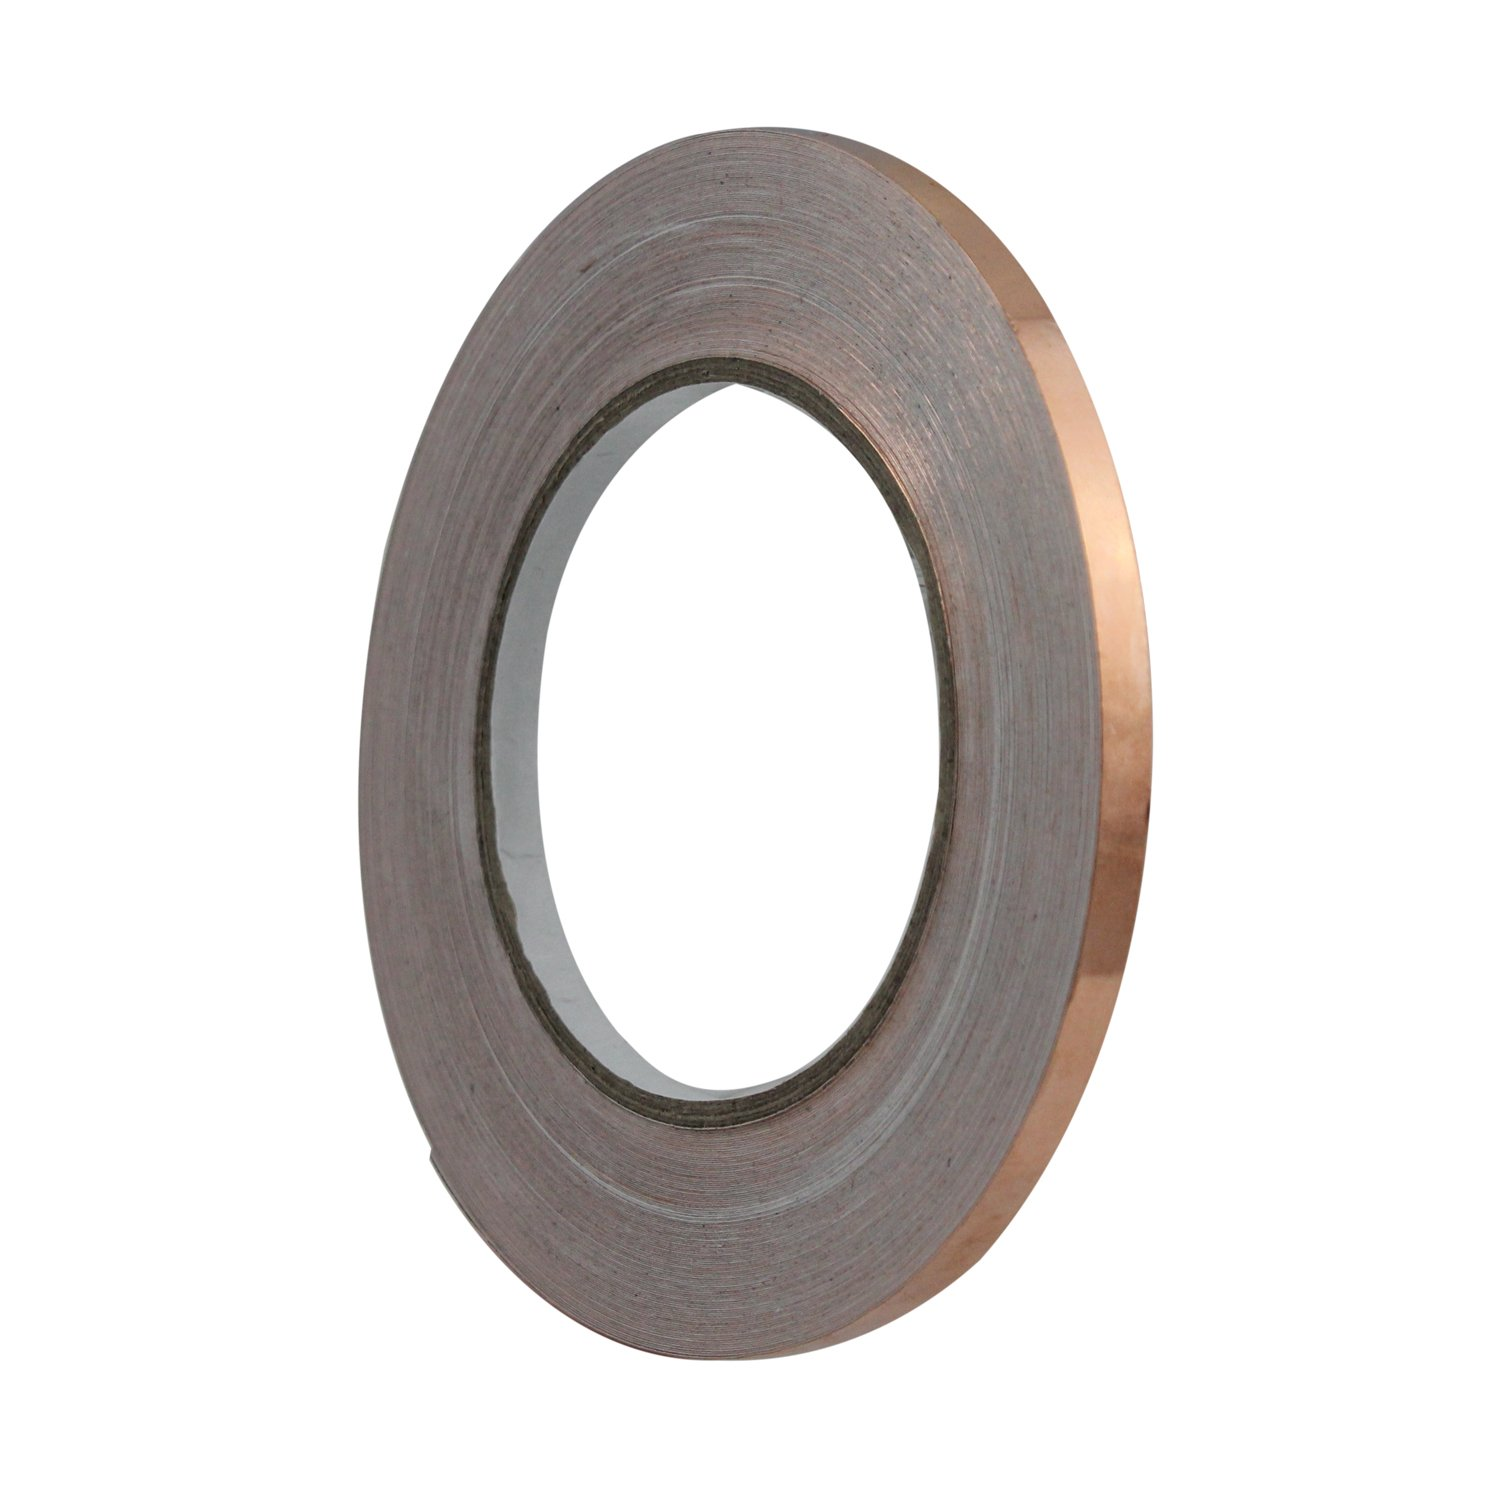 36 Yards, 4 Pack 0.25-Inch Wide Copper Foil Tape with Conductive Adhesive